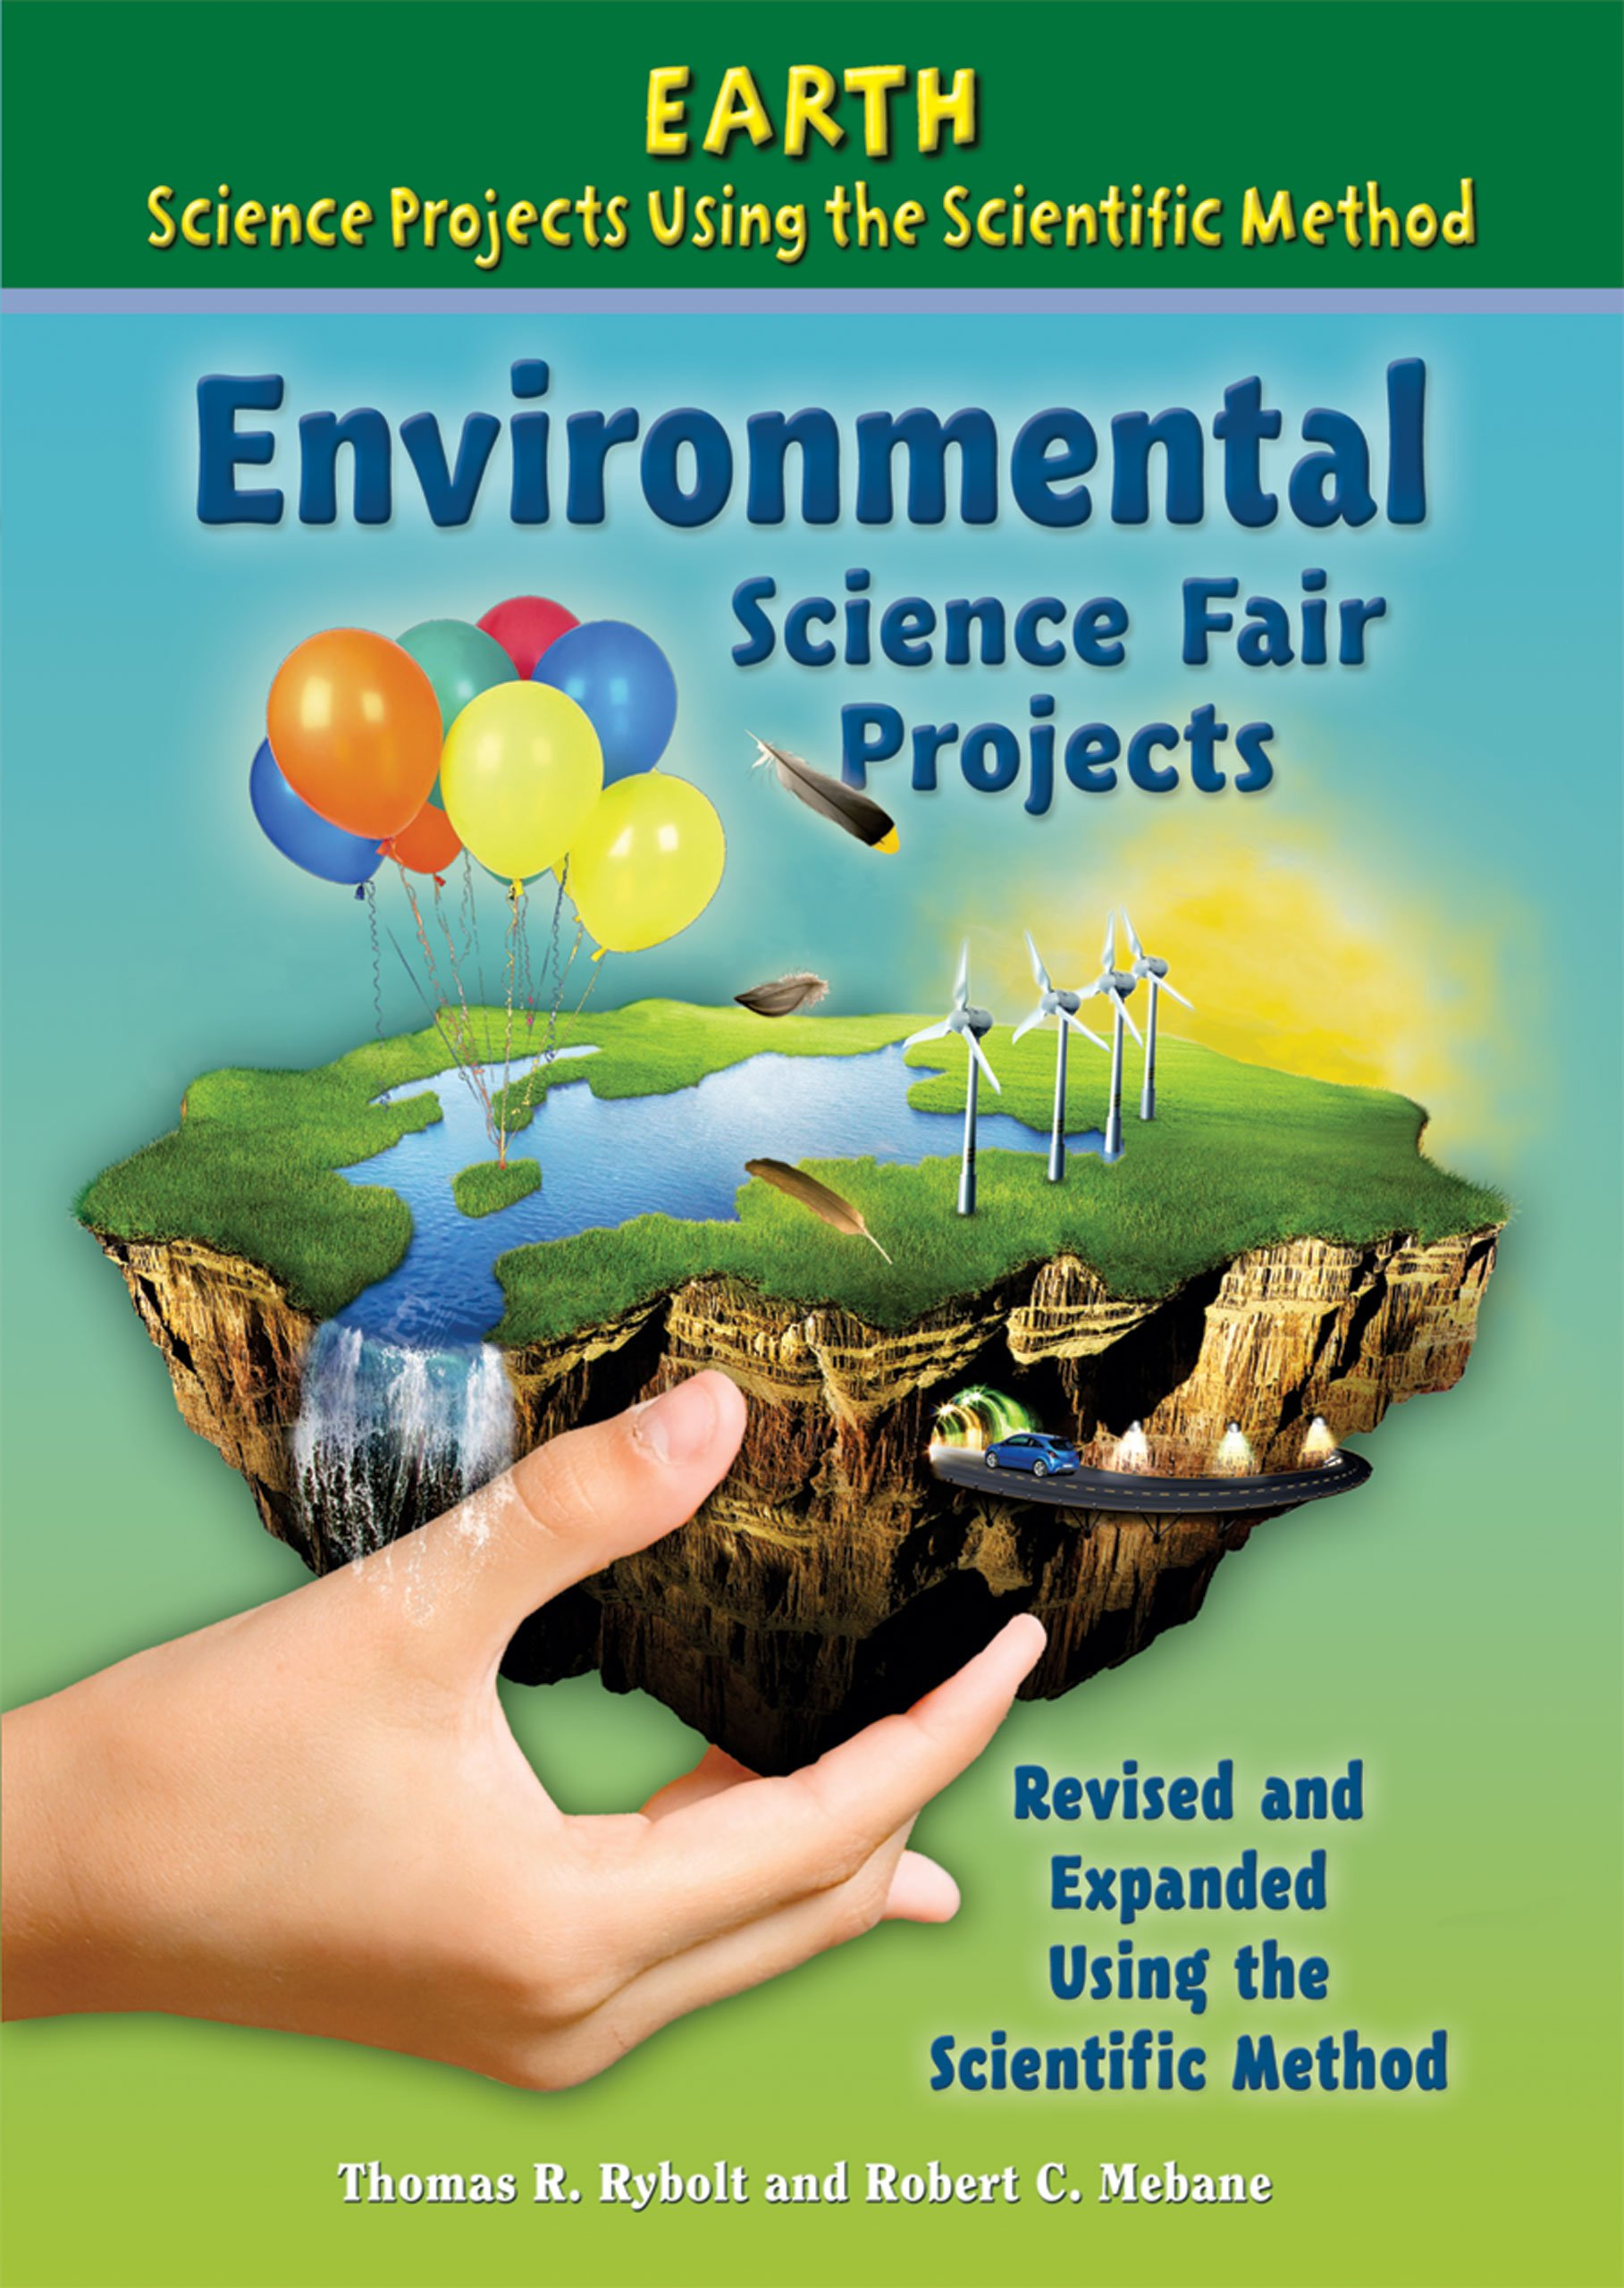 Environmental Science Fair Projects (Earth Science Projects Using